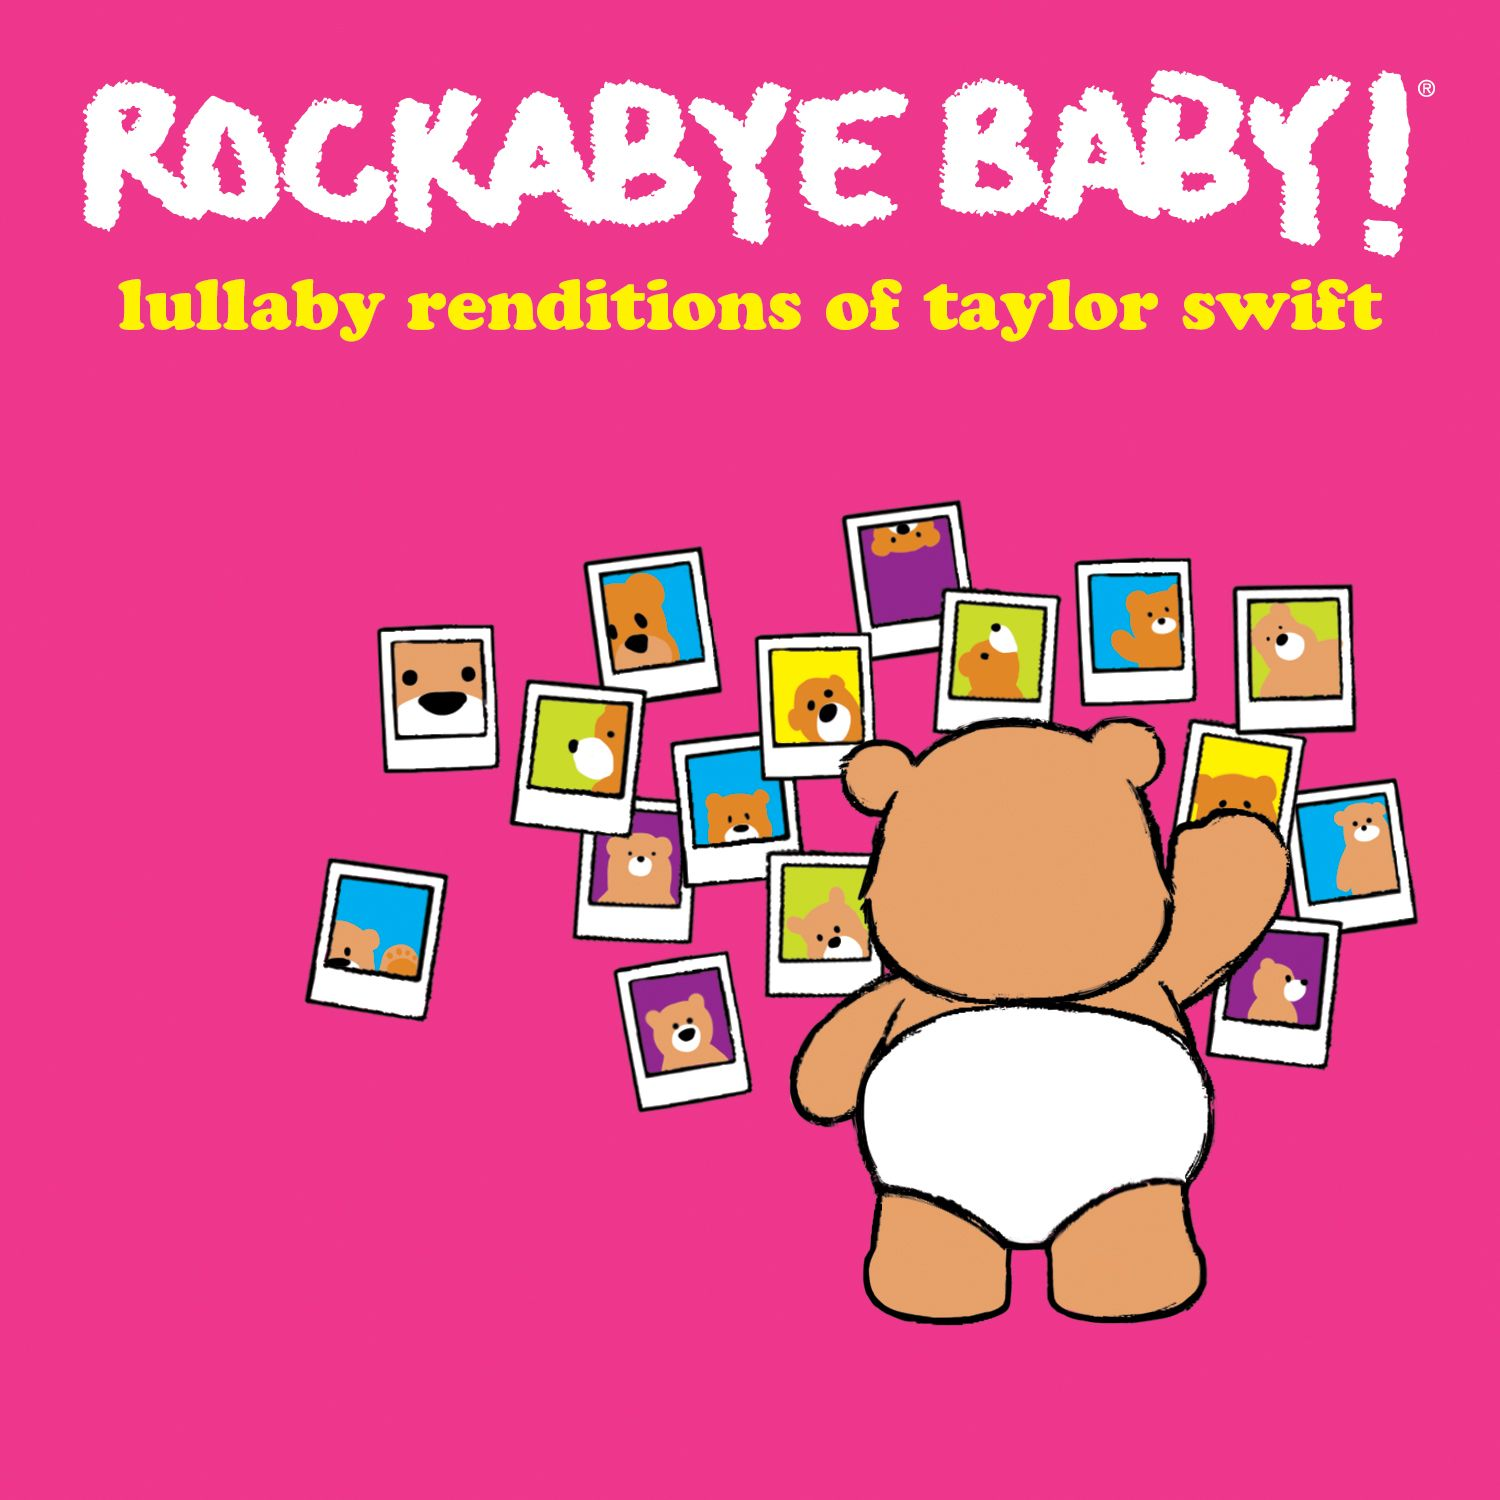 View Rockabye Baby! song lyrics by popularity along with songs featured in, albums, videos and song meanings. We have 36 albums and song lyrics in our database.